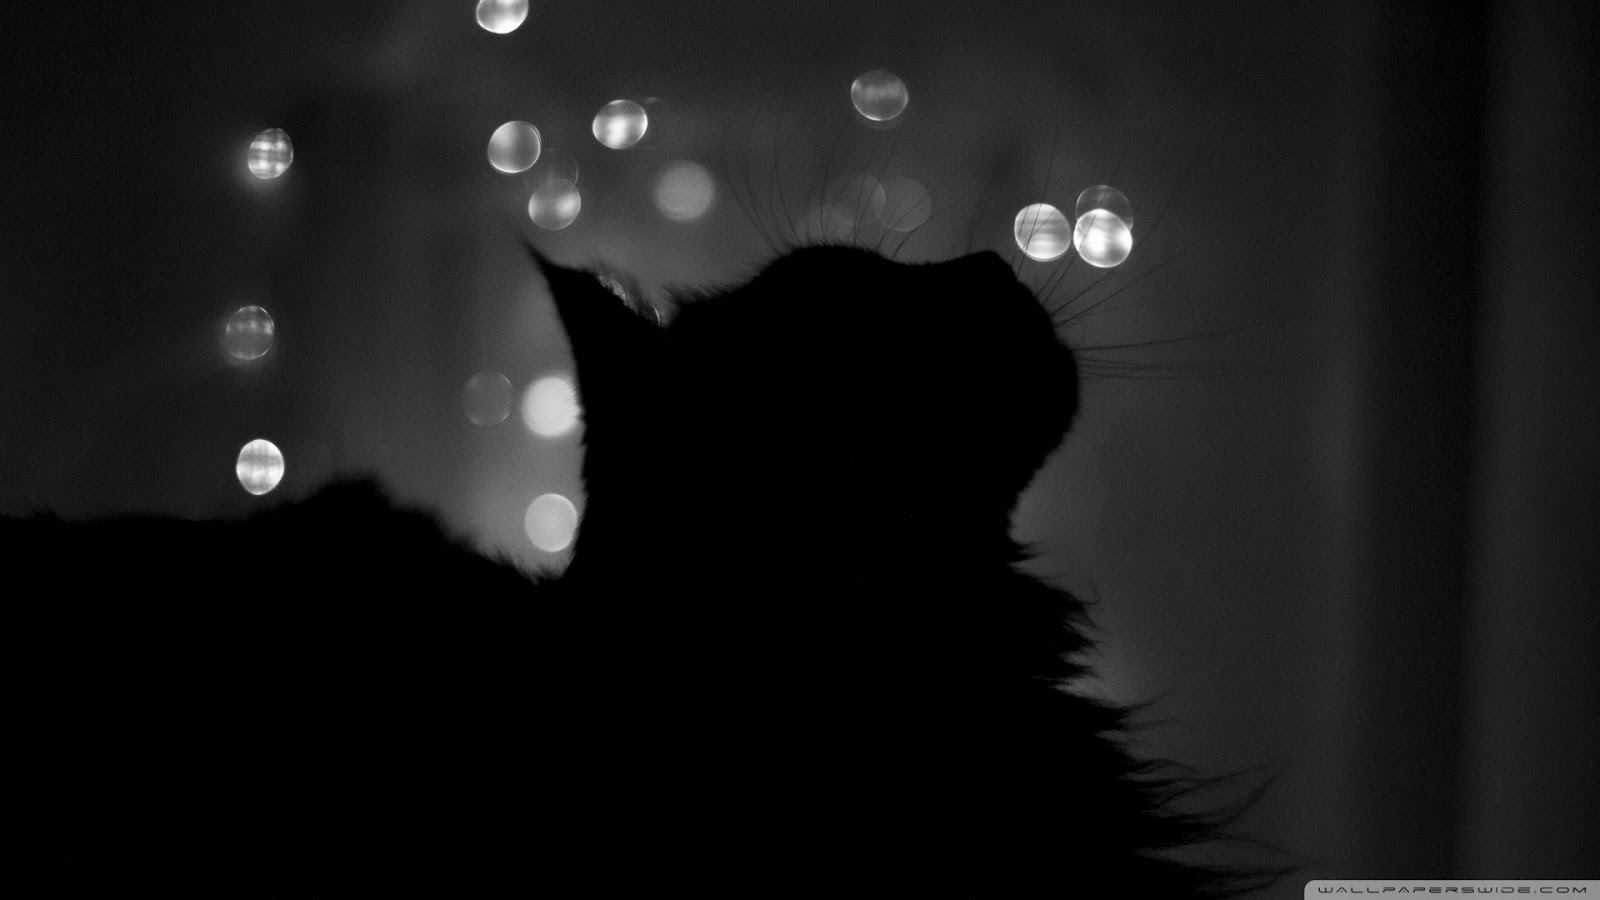 Free Download Black Cats Hd Wallpapers Black Cats Hd Wallpapers Check Out The Cool 1600x900 For Your Desktop Mobile Tablet Explore 73 Black Cat Wallpapers Black Kitten Wallpaper Kitten